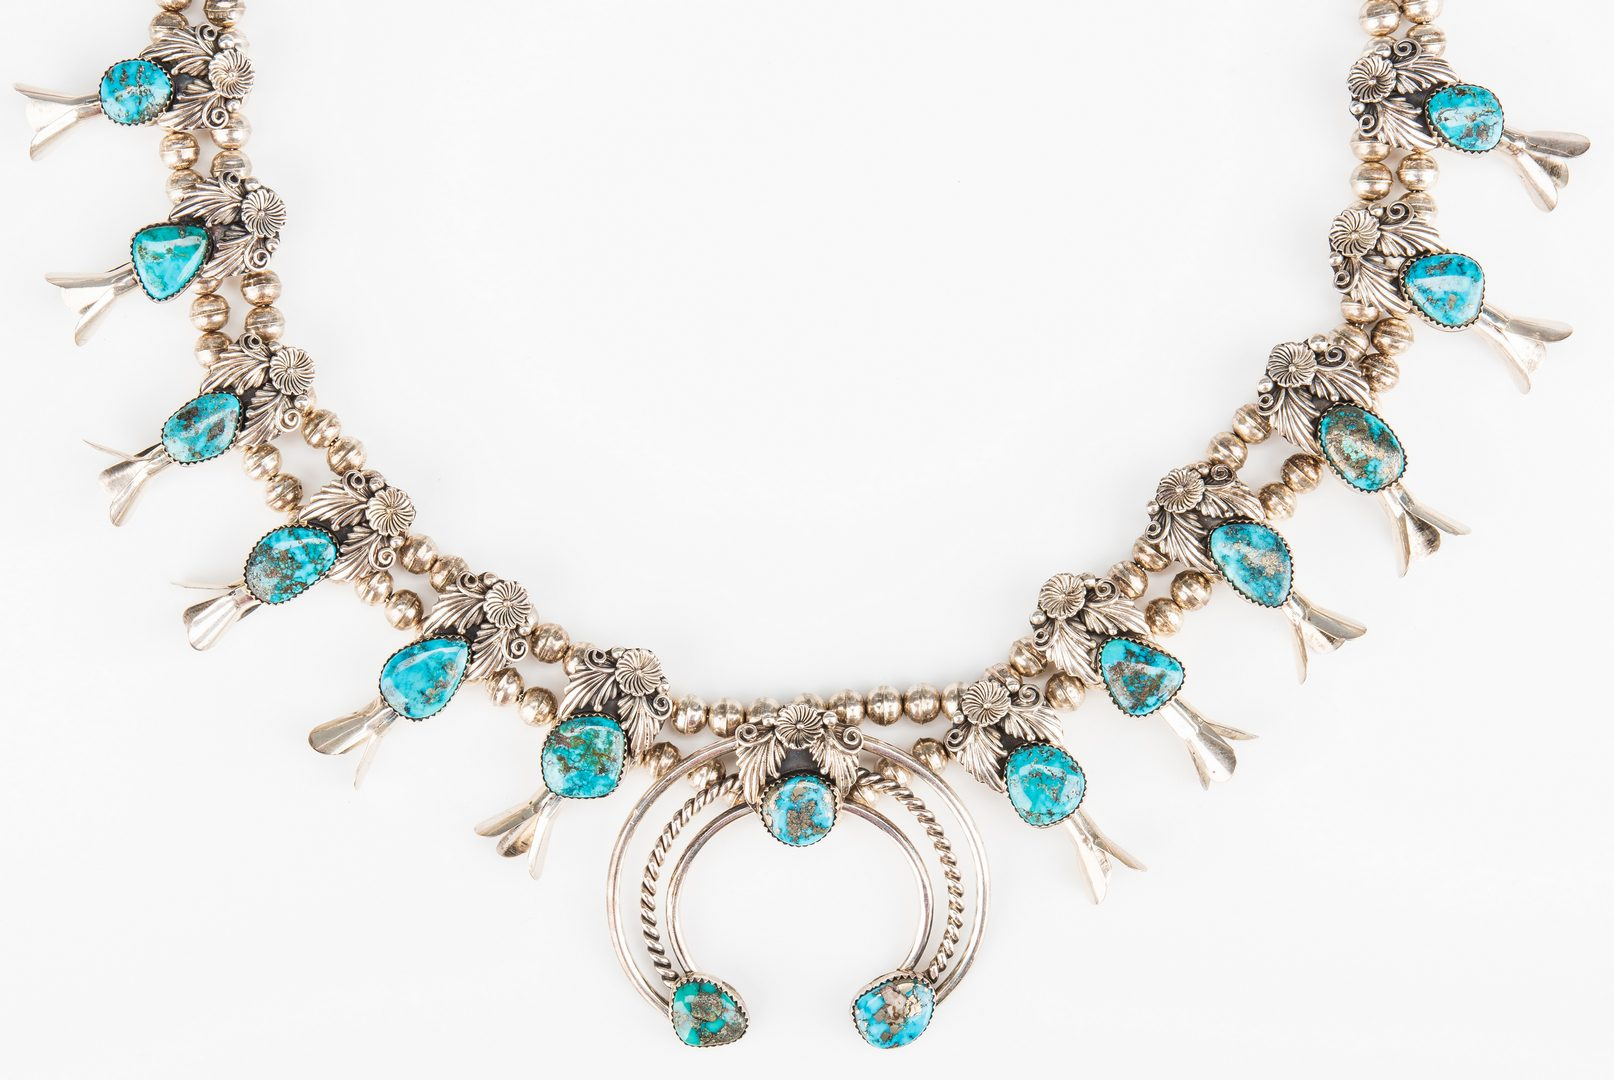 Lot 791: Navajo Squash Blossom Necklace signed